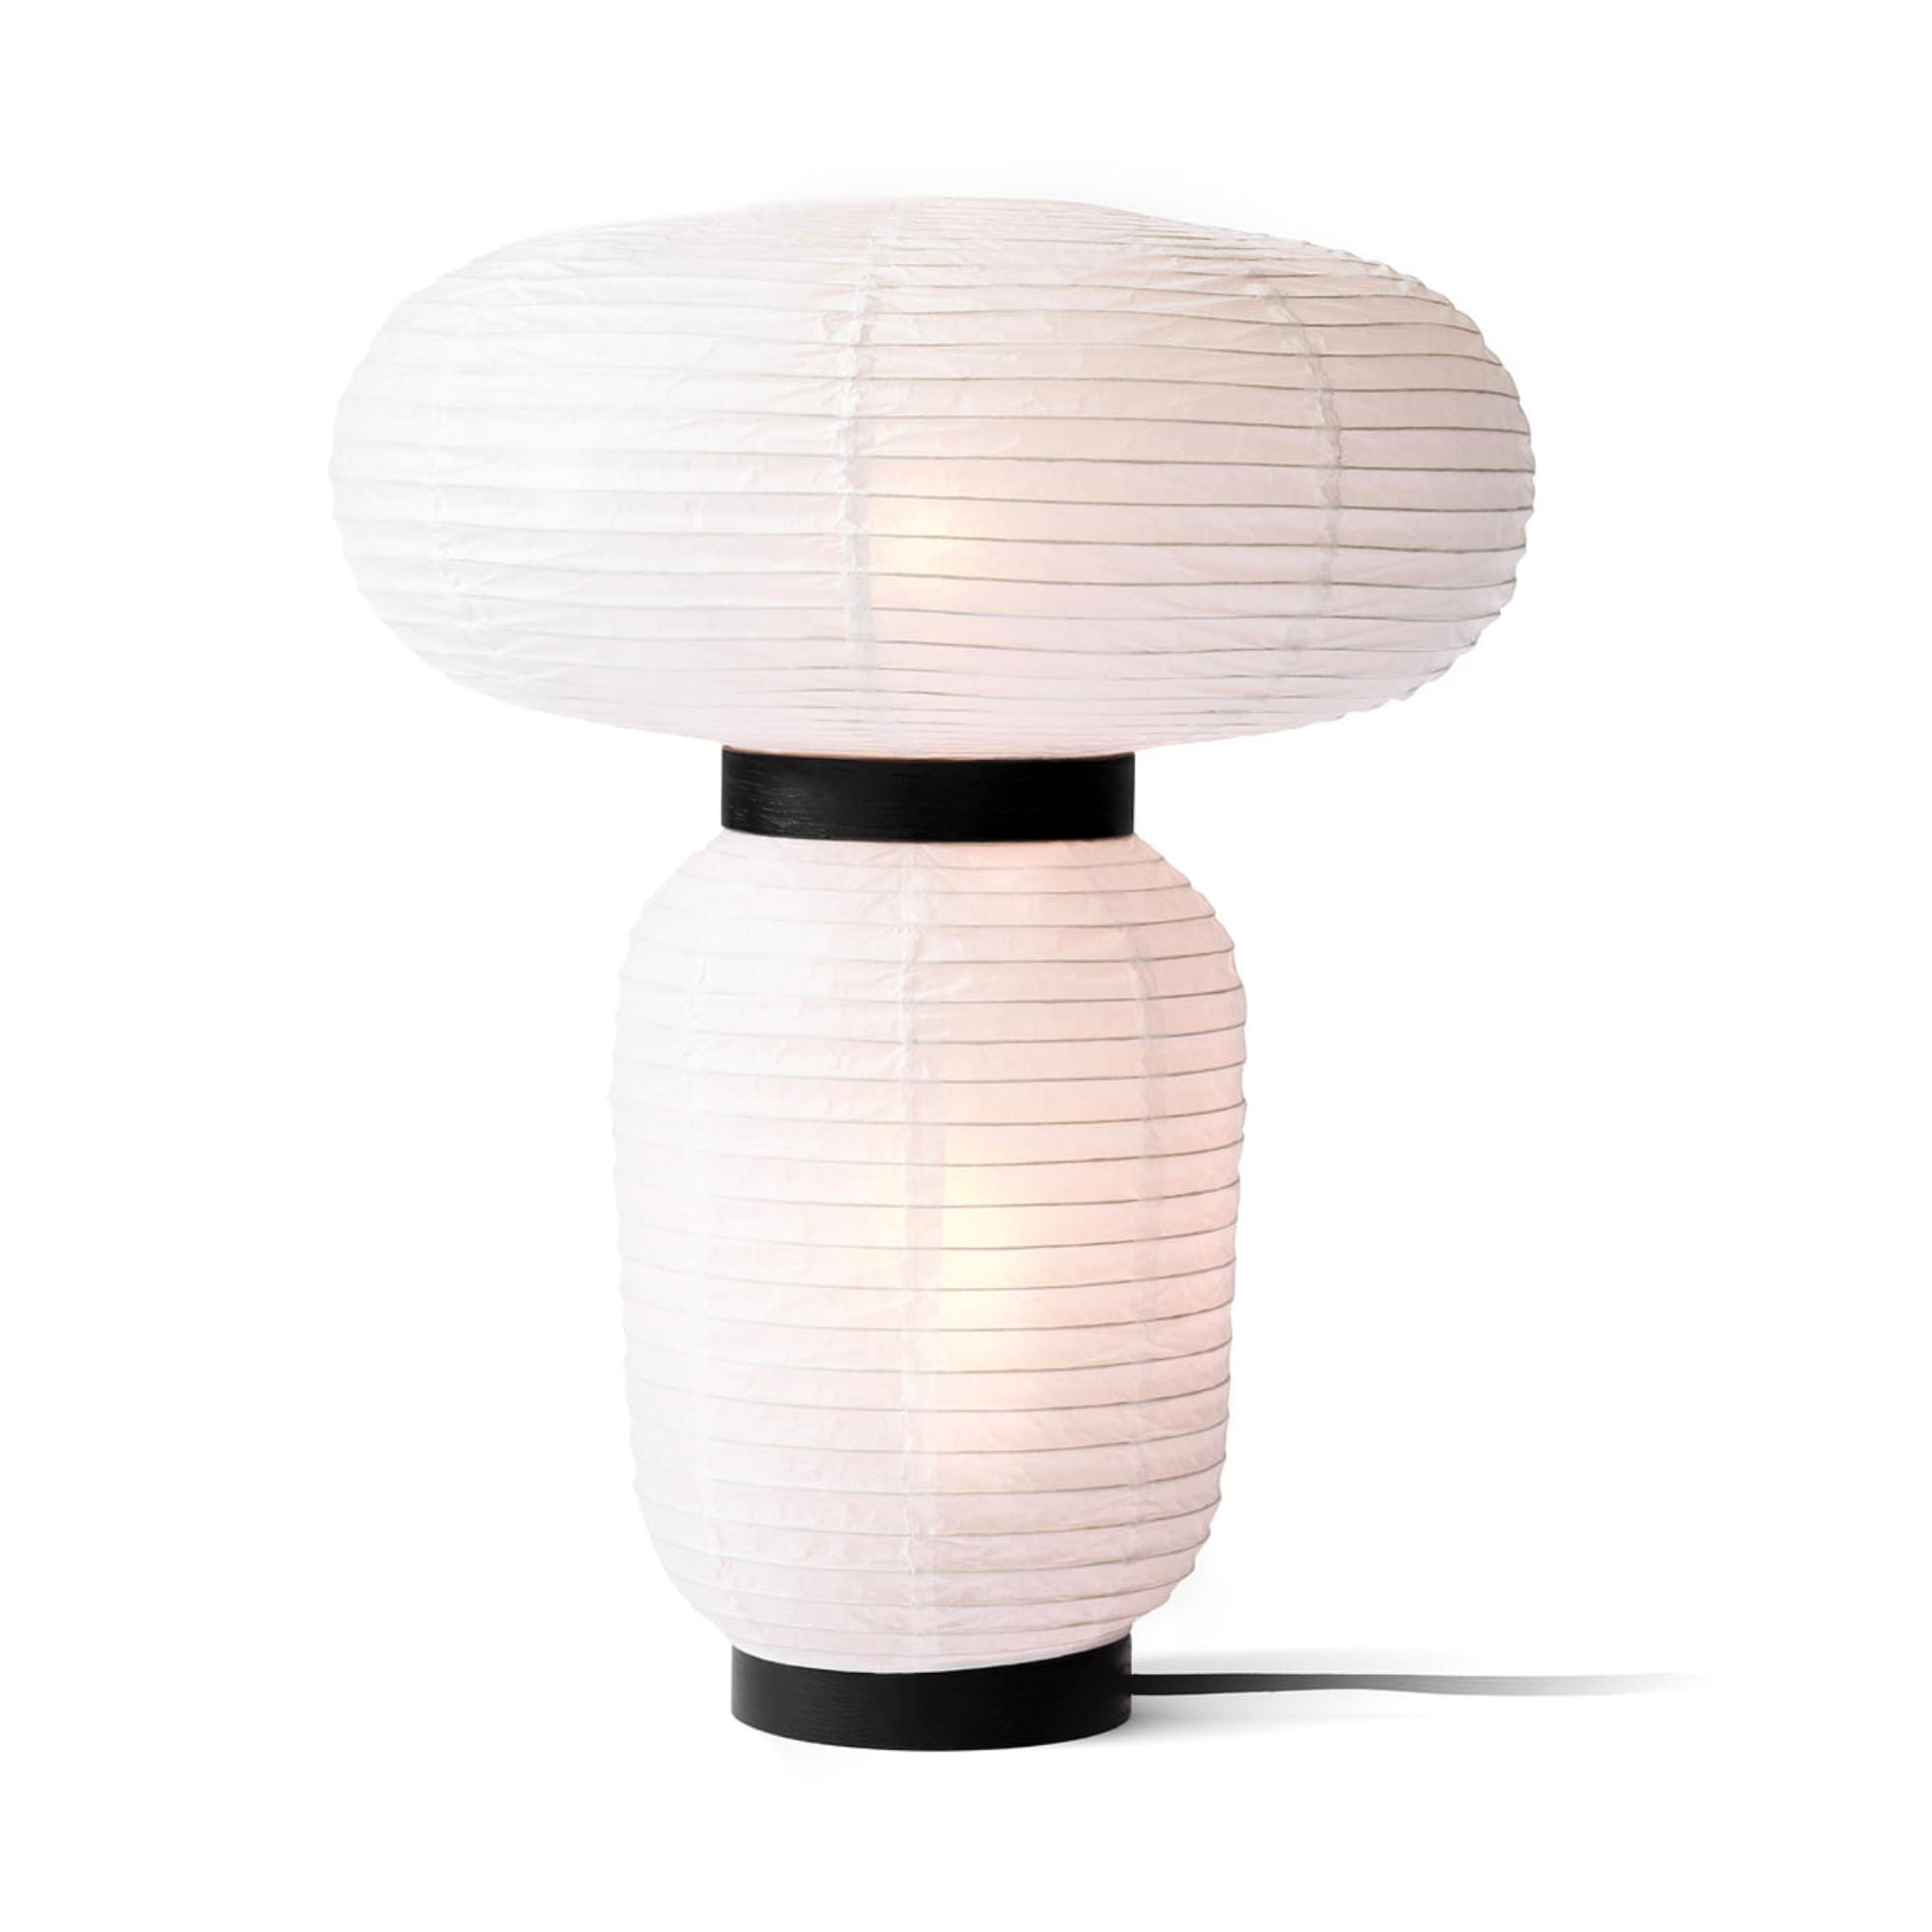 JH18 Formakami table lamp